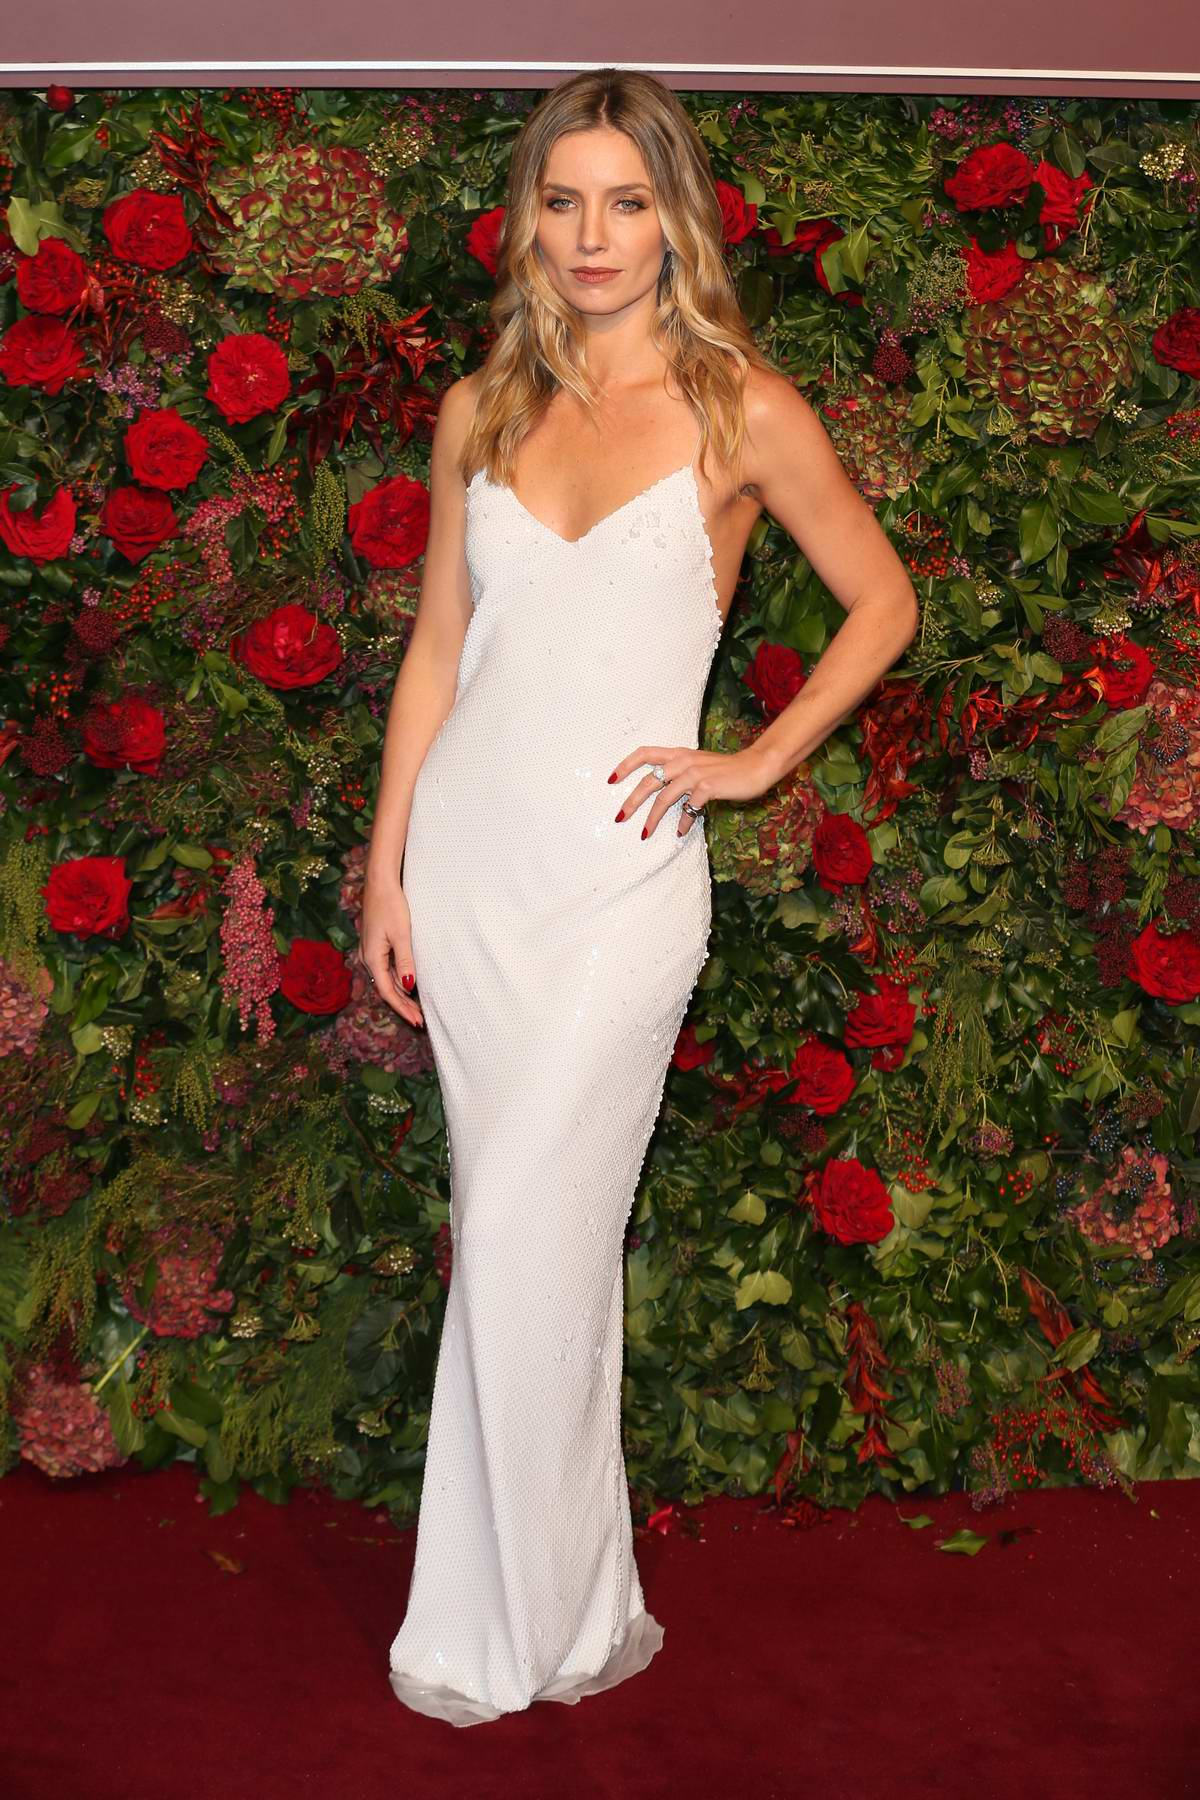 Annabelle Wallis attends the 64th Evening Standard Theatre Awards at the Theatre Royal Drury Lane in London, UK